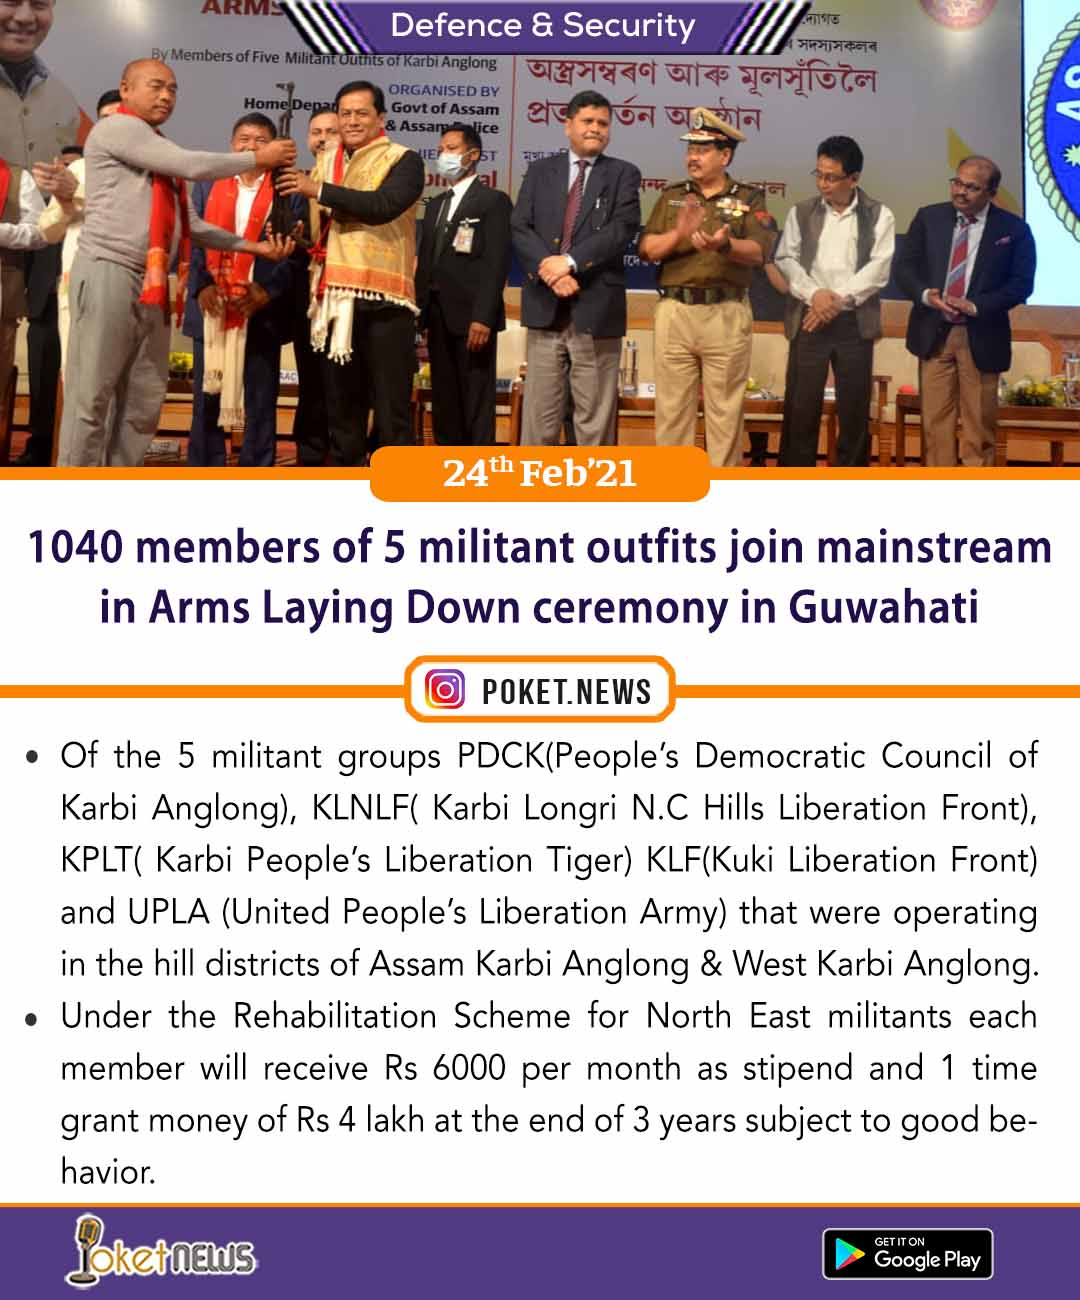 1040 members of 5 militant outfits join mainstream in Arms Laying Down ceremony in Guwahati